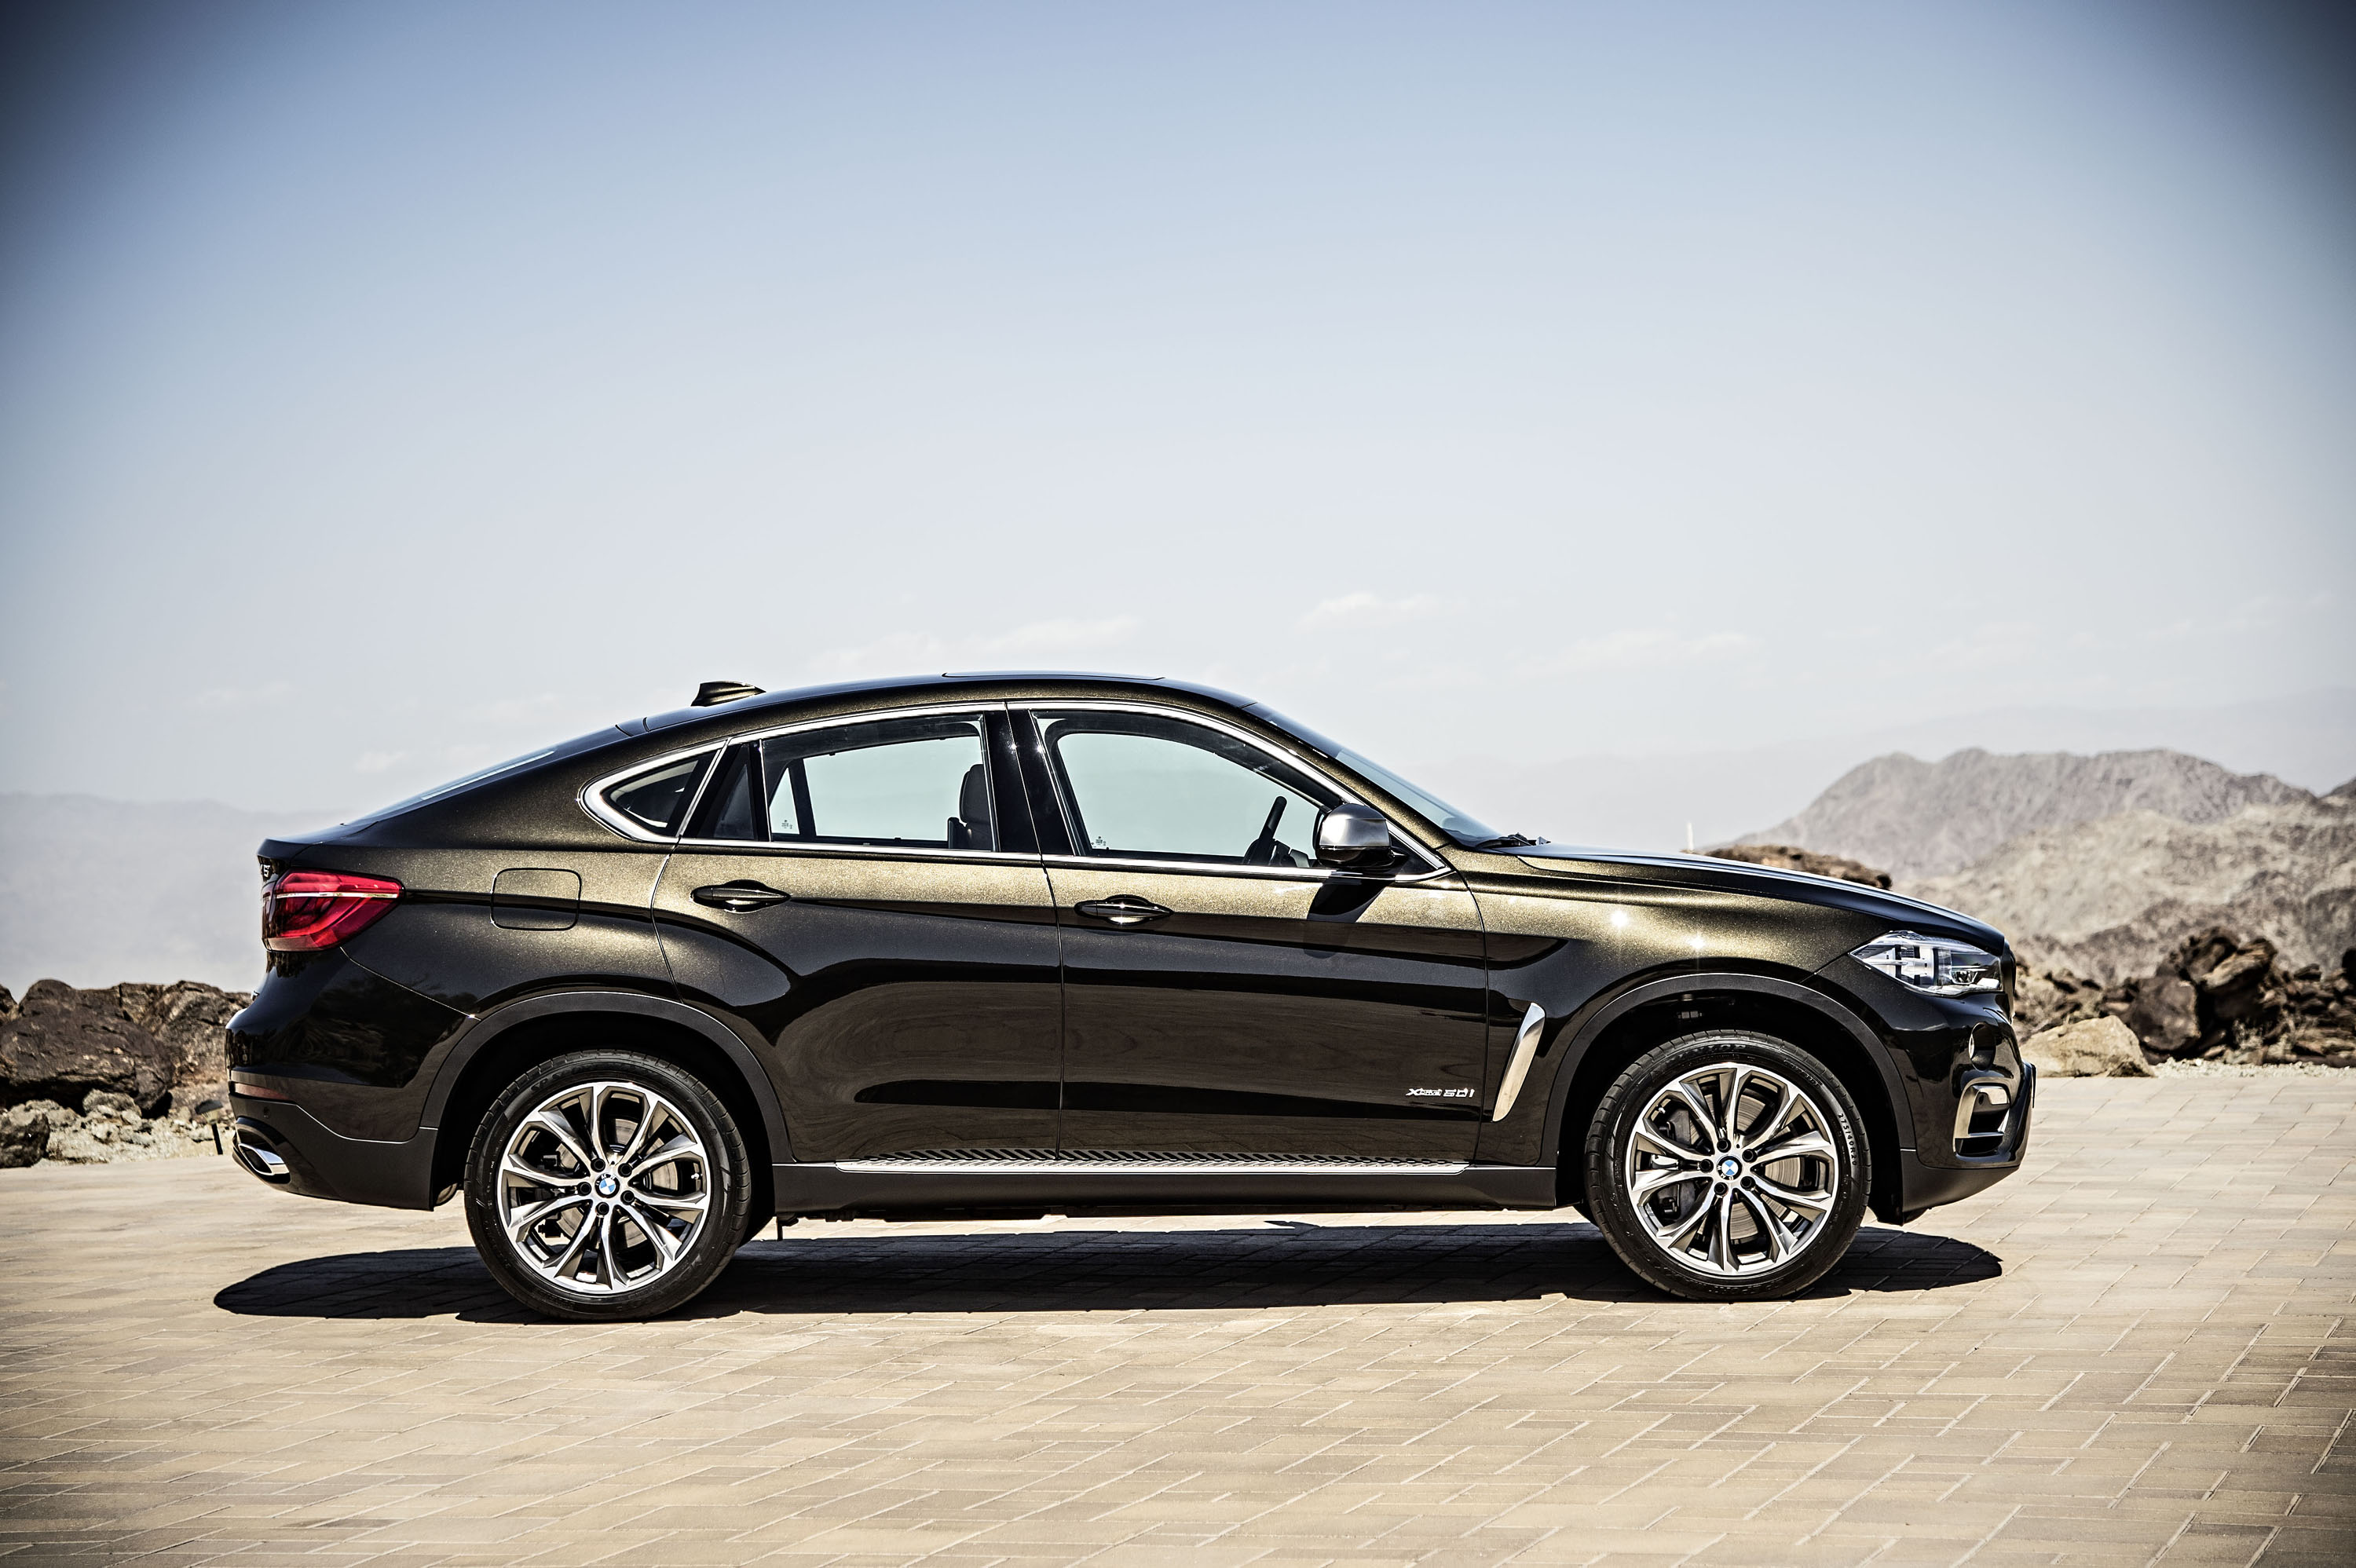 New And Used Bmw X6 Prices, Photos, Reviews, Specs  The